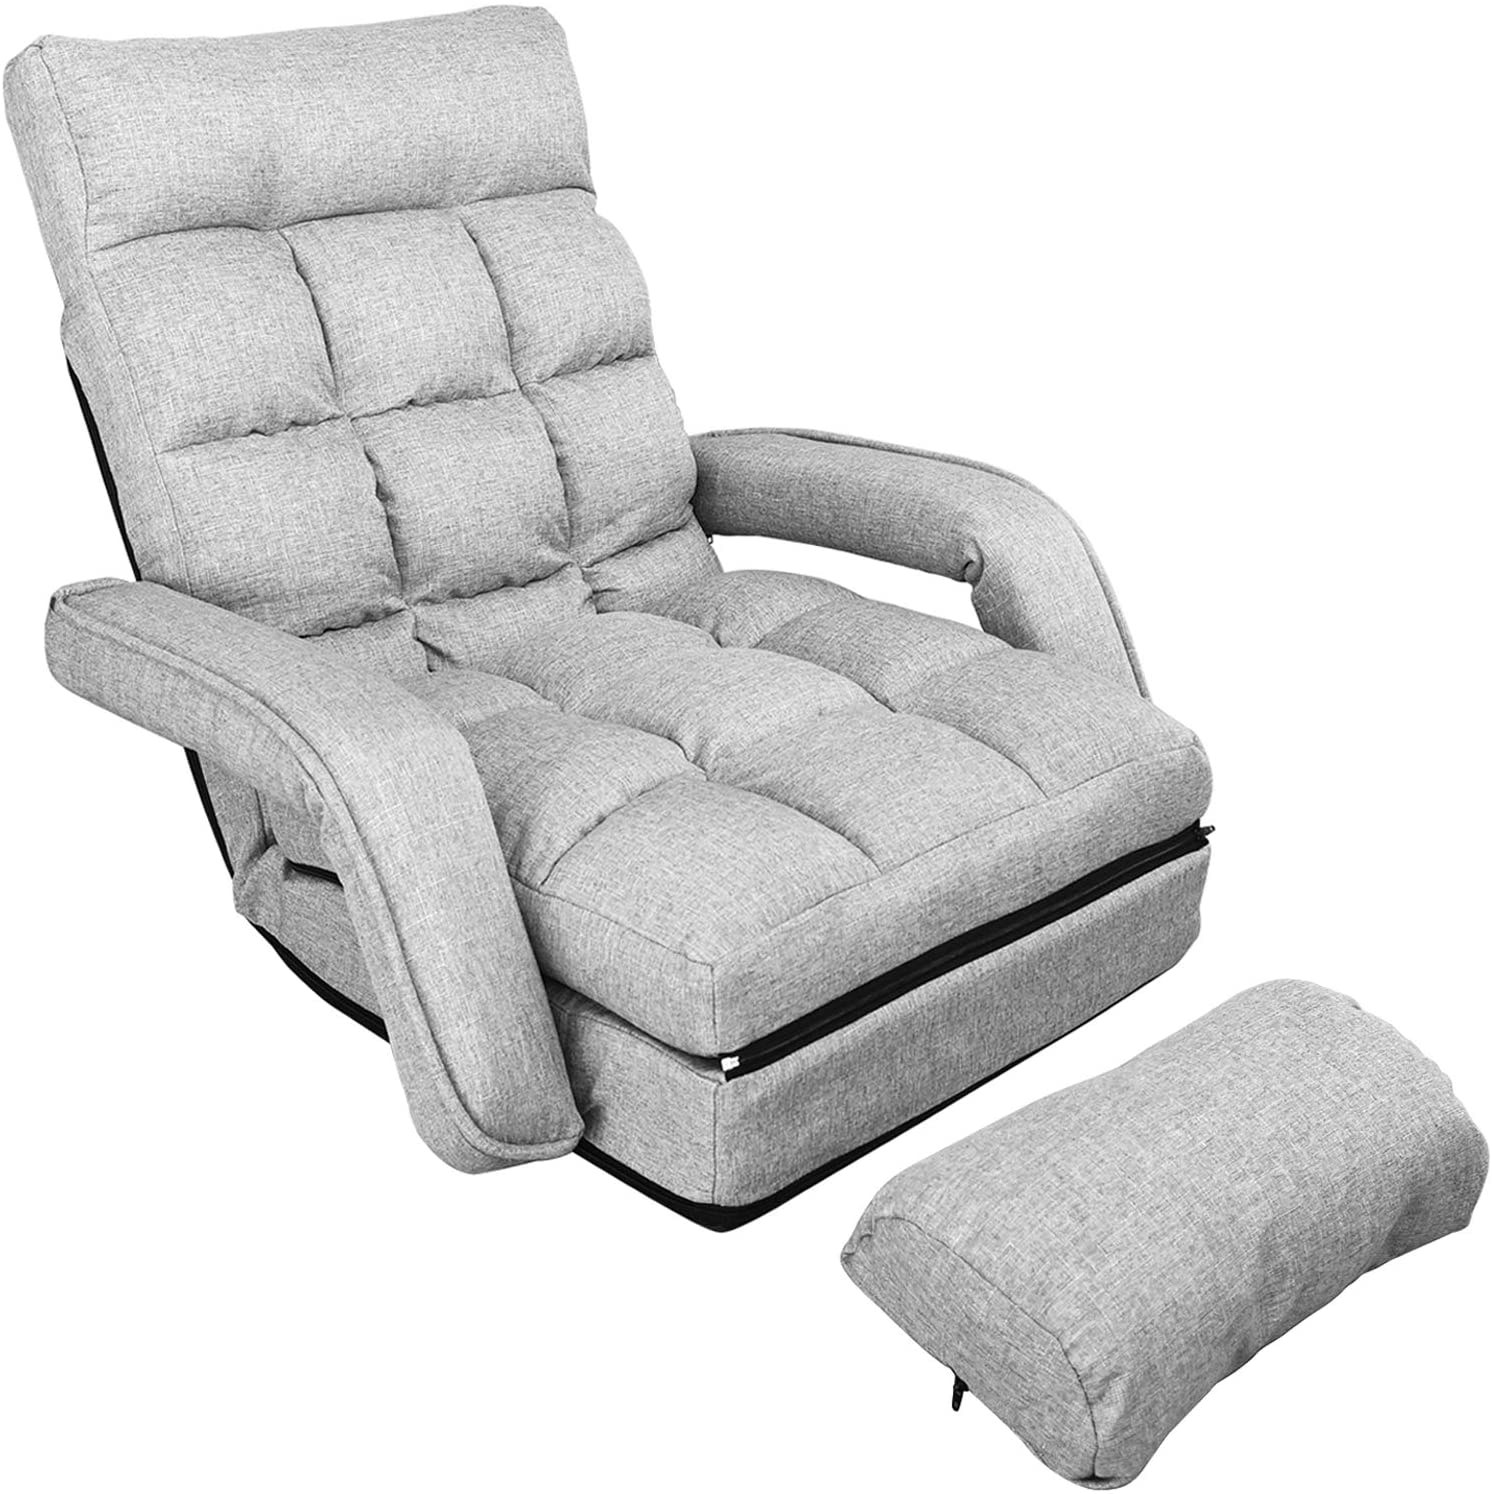 waytrim indoor chaise lounge sofa folding lazy sofa floor chair 6 position folding padded lounger bed with armrests and a pillow chaise couch gray